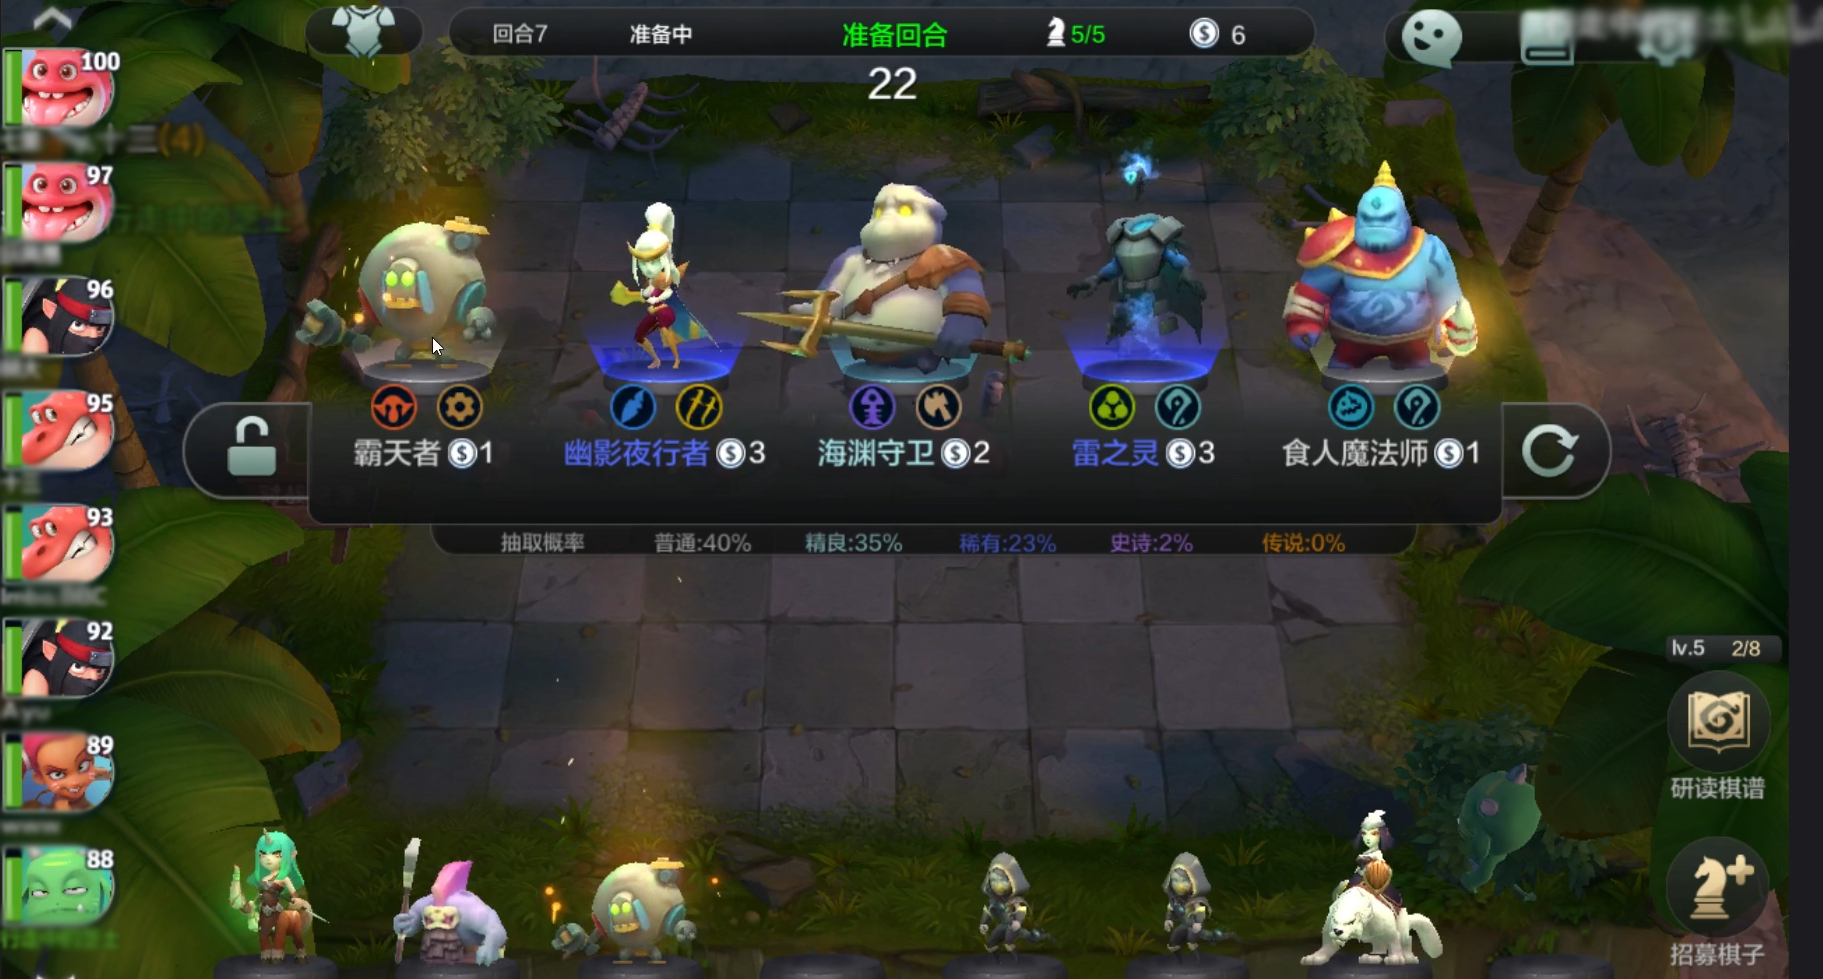 The Authorised Auto-chess mobile game closed beta opened